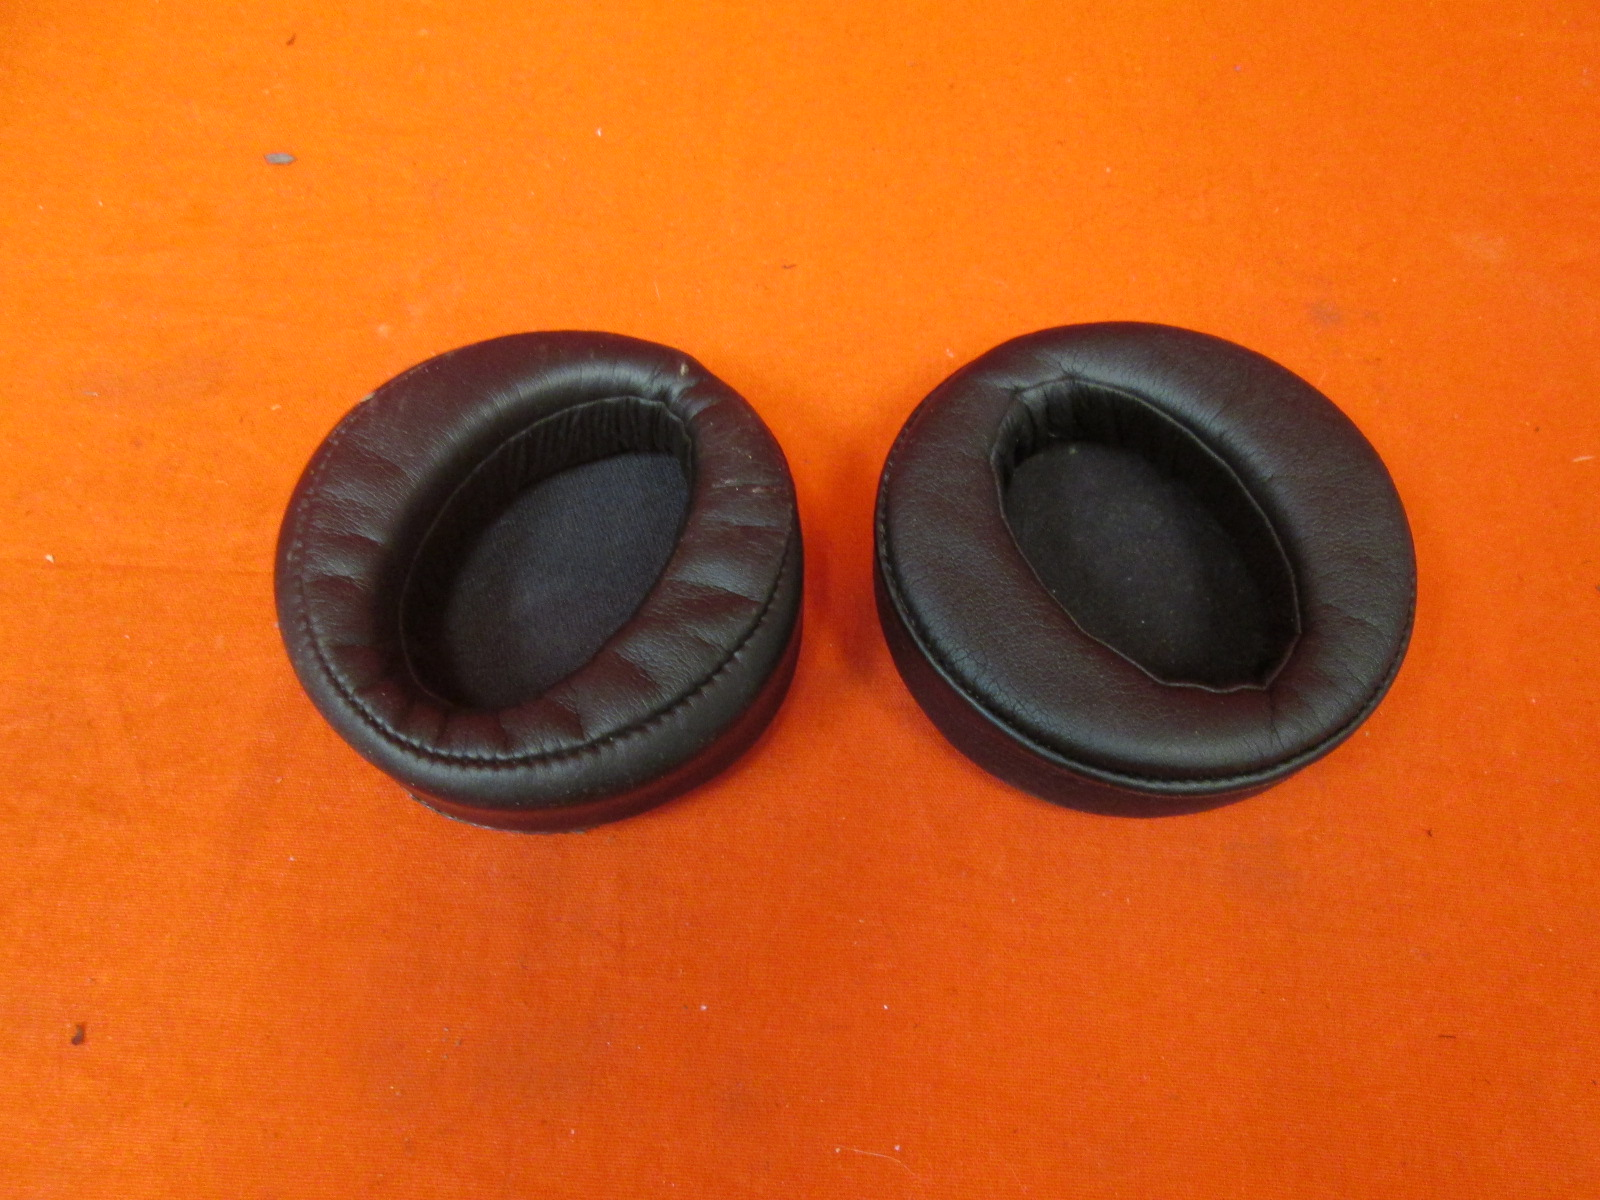 Replacement Cushion Ear Pads Earmuff Earpads Cup Cover For Sony Sony